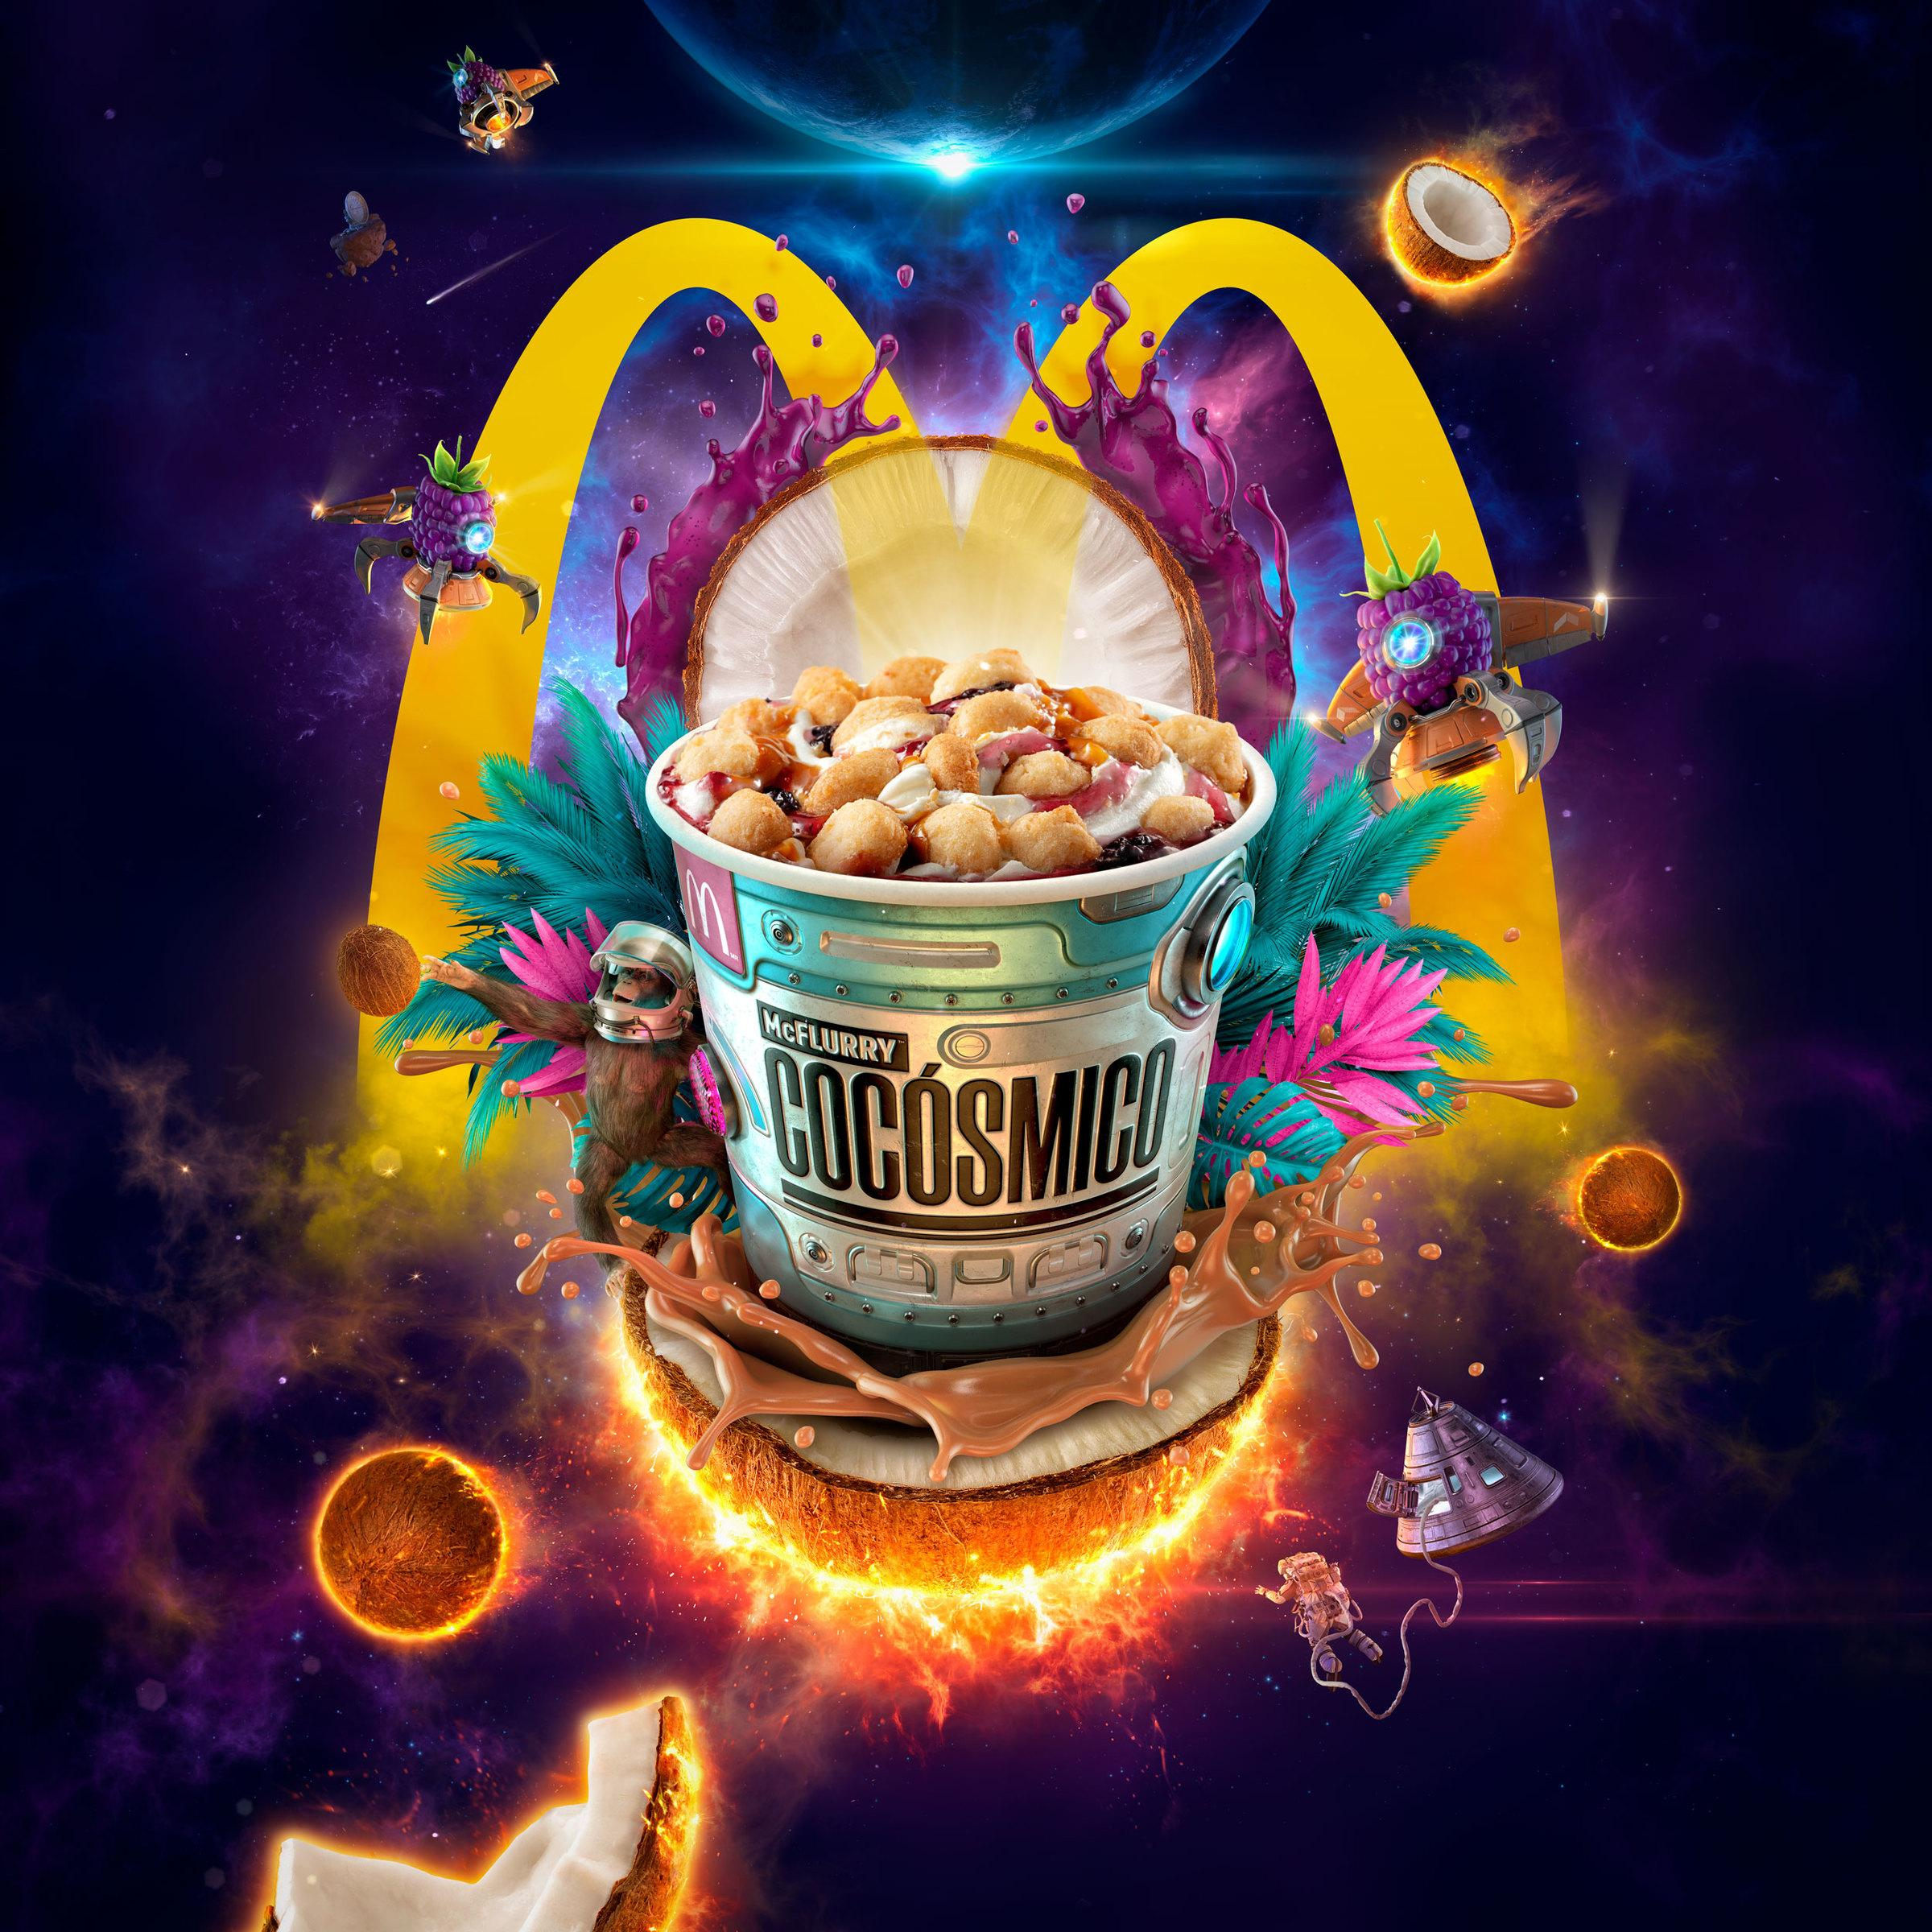 McDonald's Ads - McFlurry Cocosmico